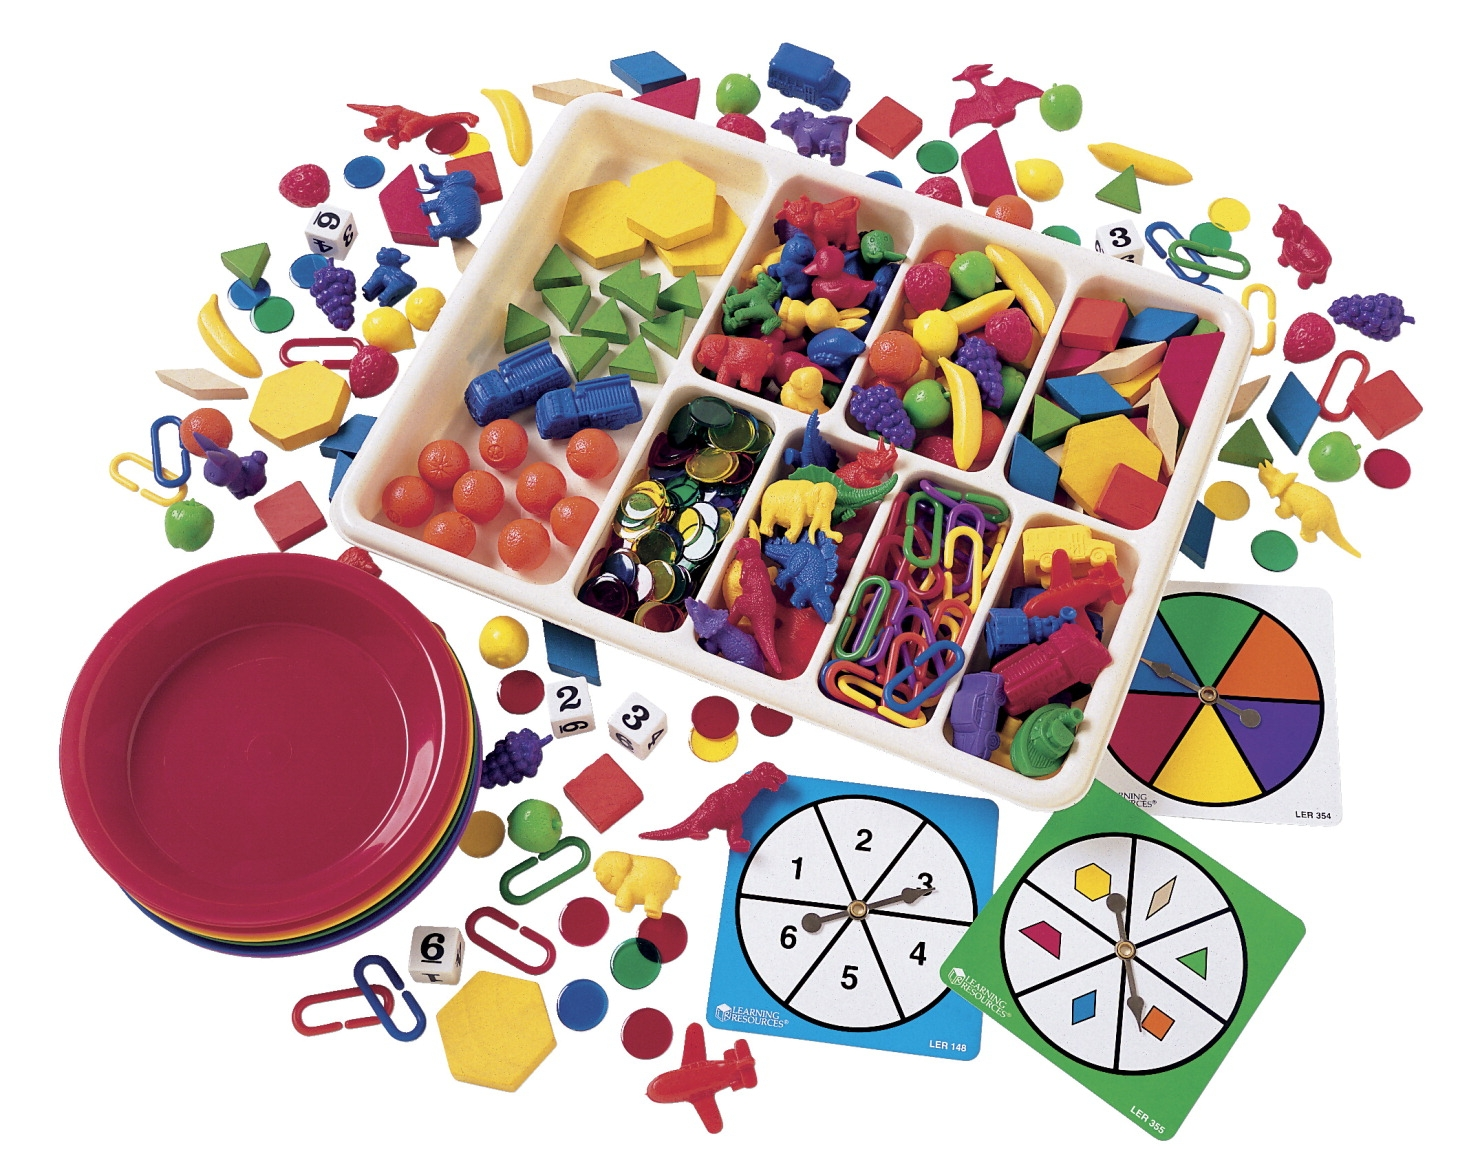 Facilities Management Message Activity Boards - 347126 - Learning Resources Deluxe Sorting Set With Activity Cards 347126